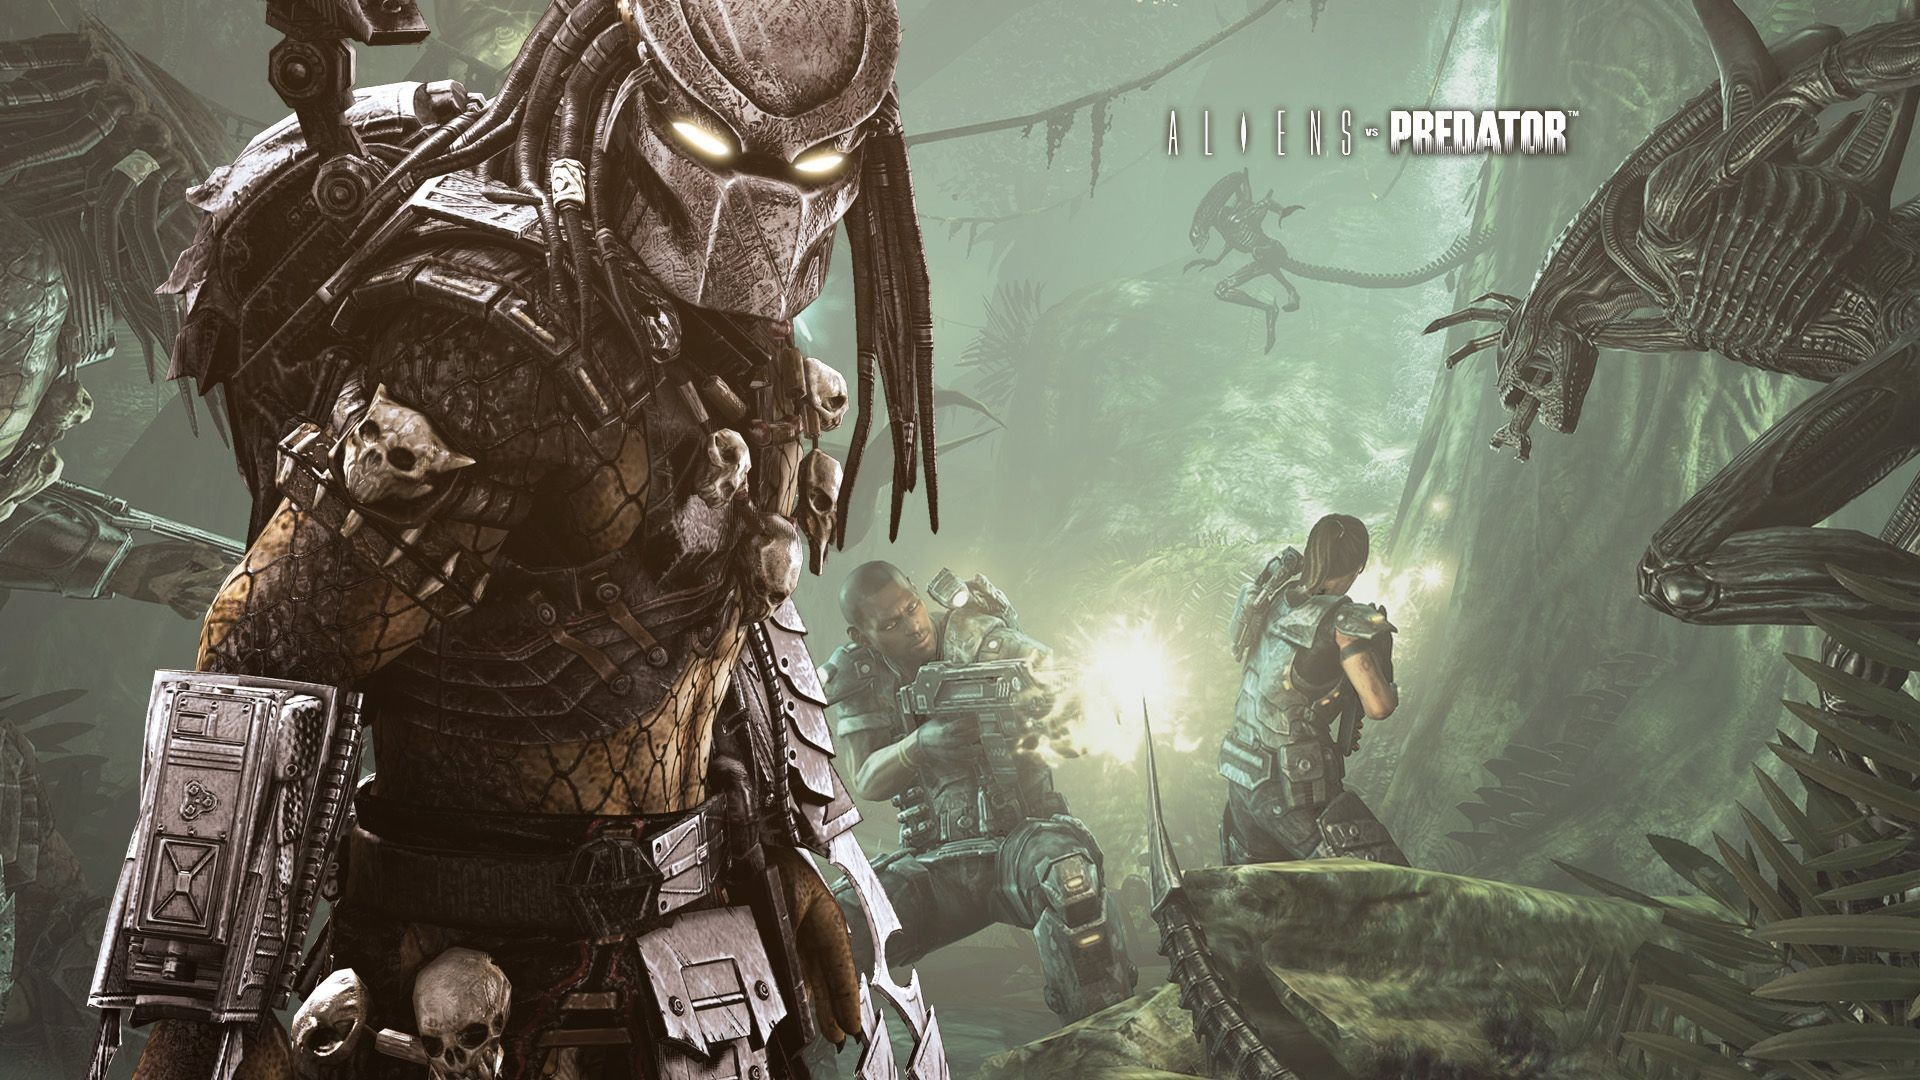 Res: 1920x1080, Wallpaper of Alien vs Predator in high definition - AVP on Earth